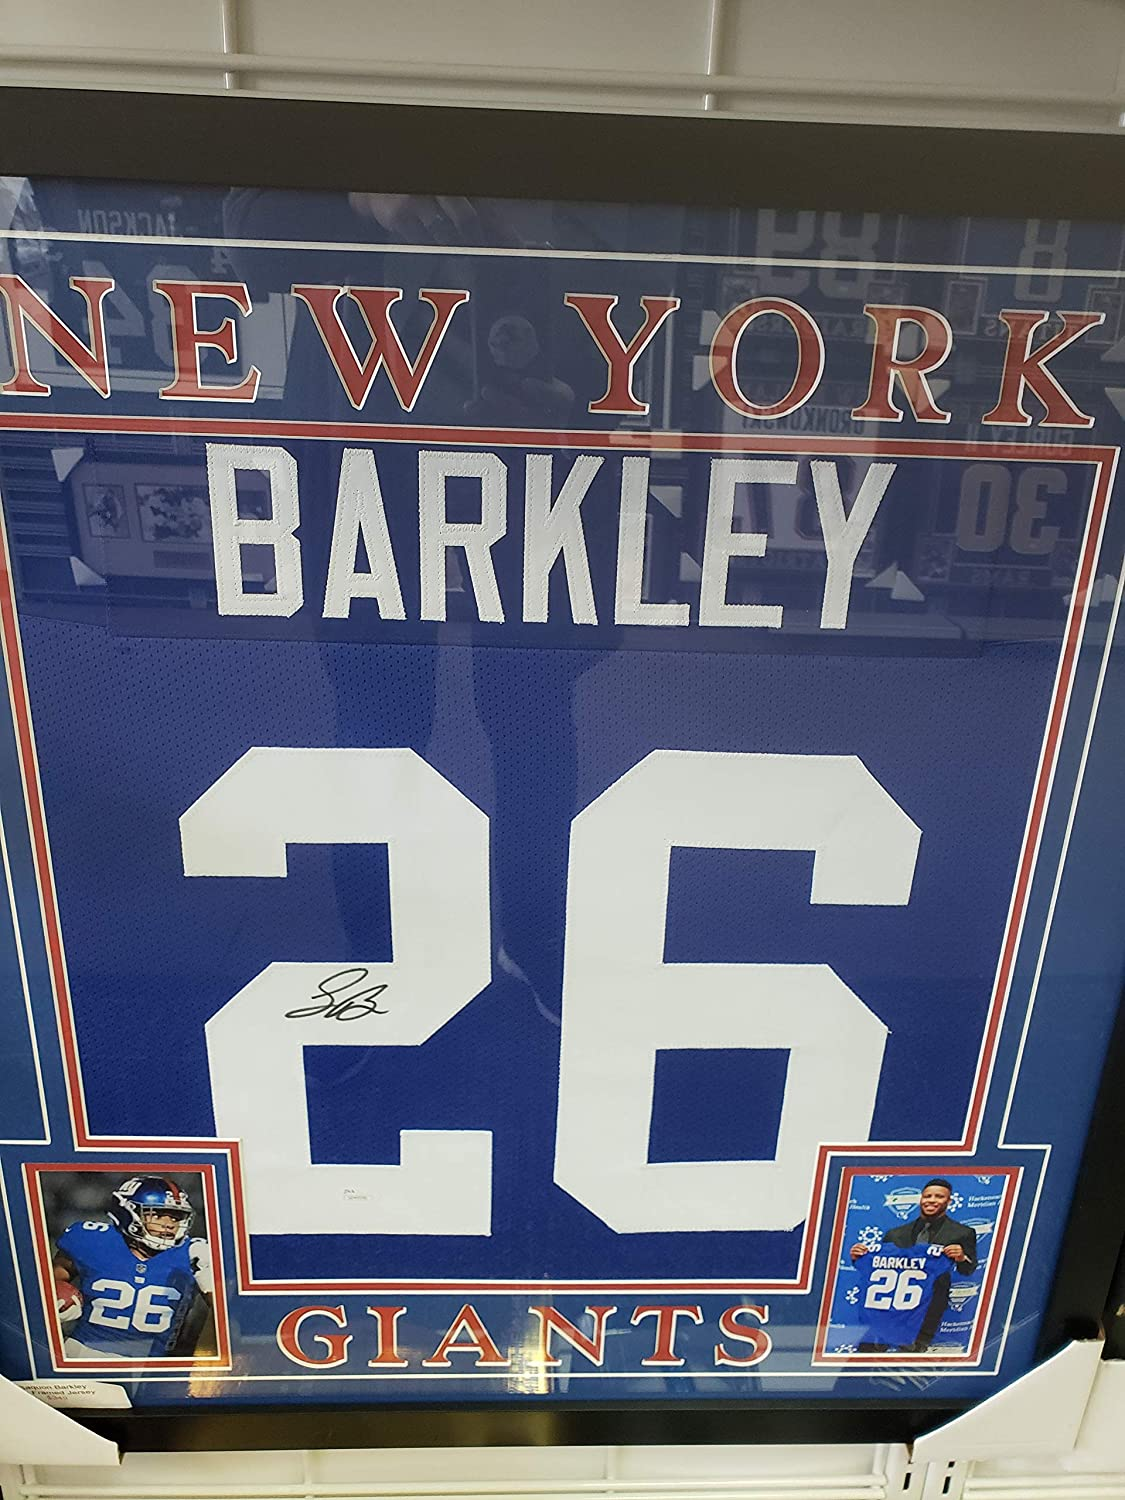 Saquon Barkley - NY Giant Autographed Framed Jersey with Two 8x10 Photos